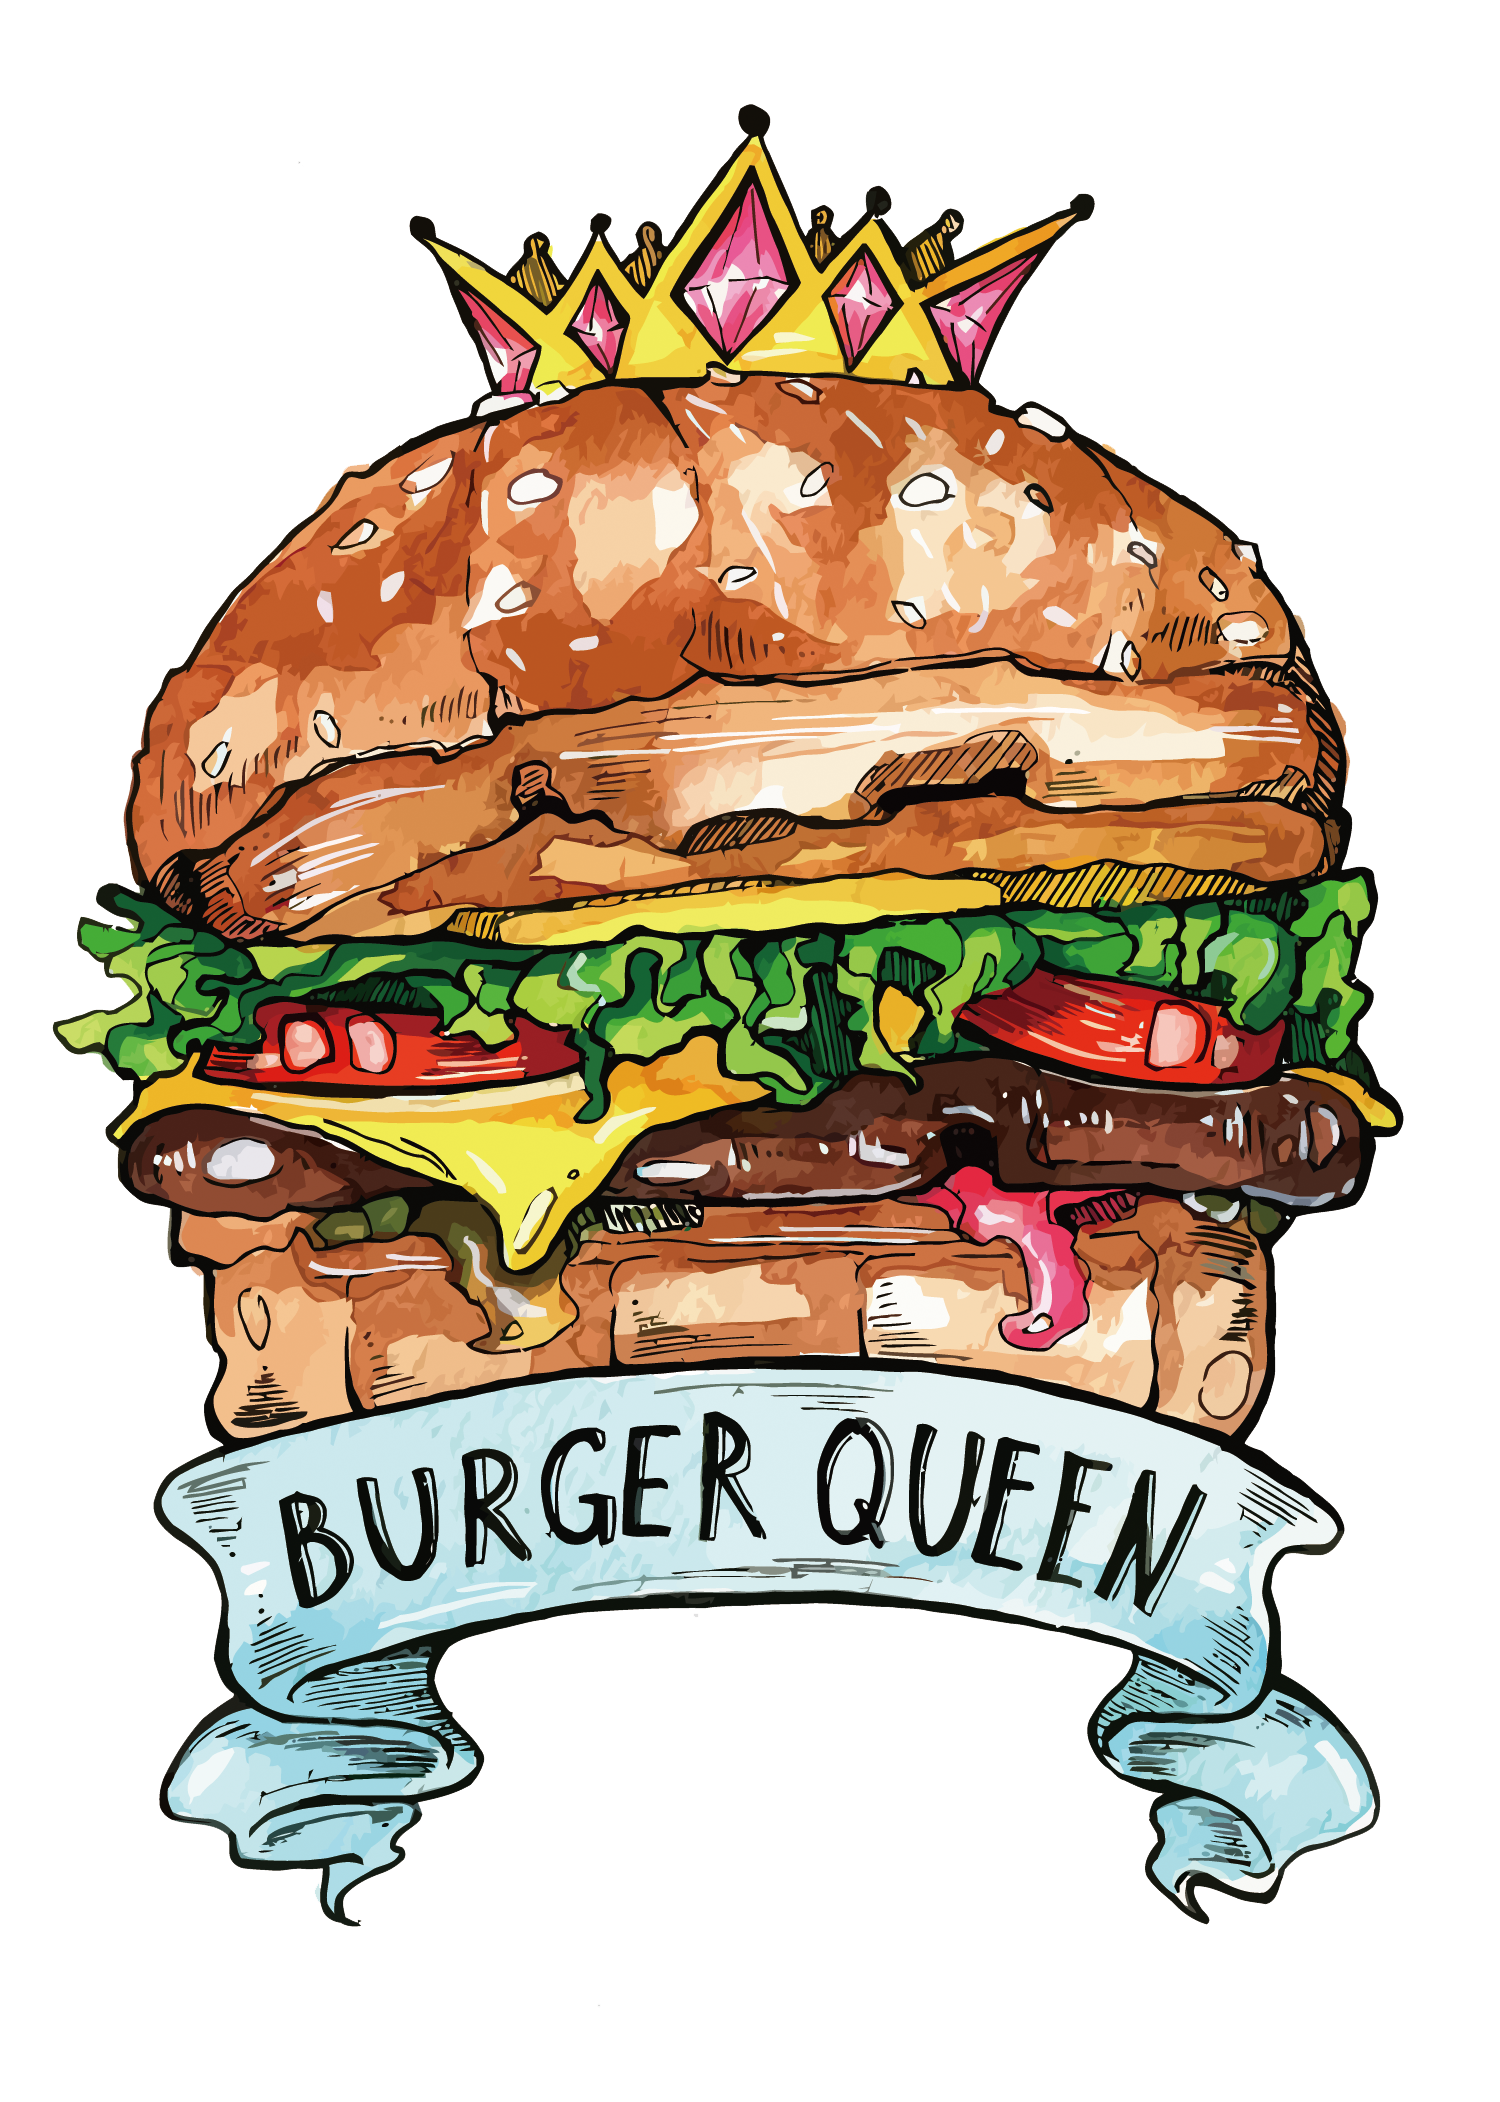 King Hamburger Food Cheeseburger Fast Burger Vector PNG Image